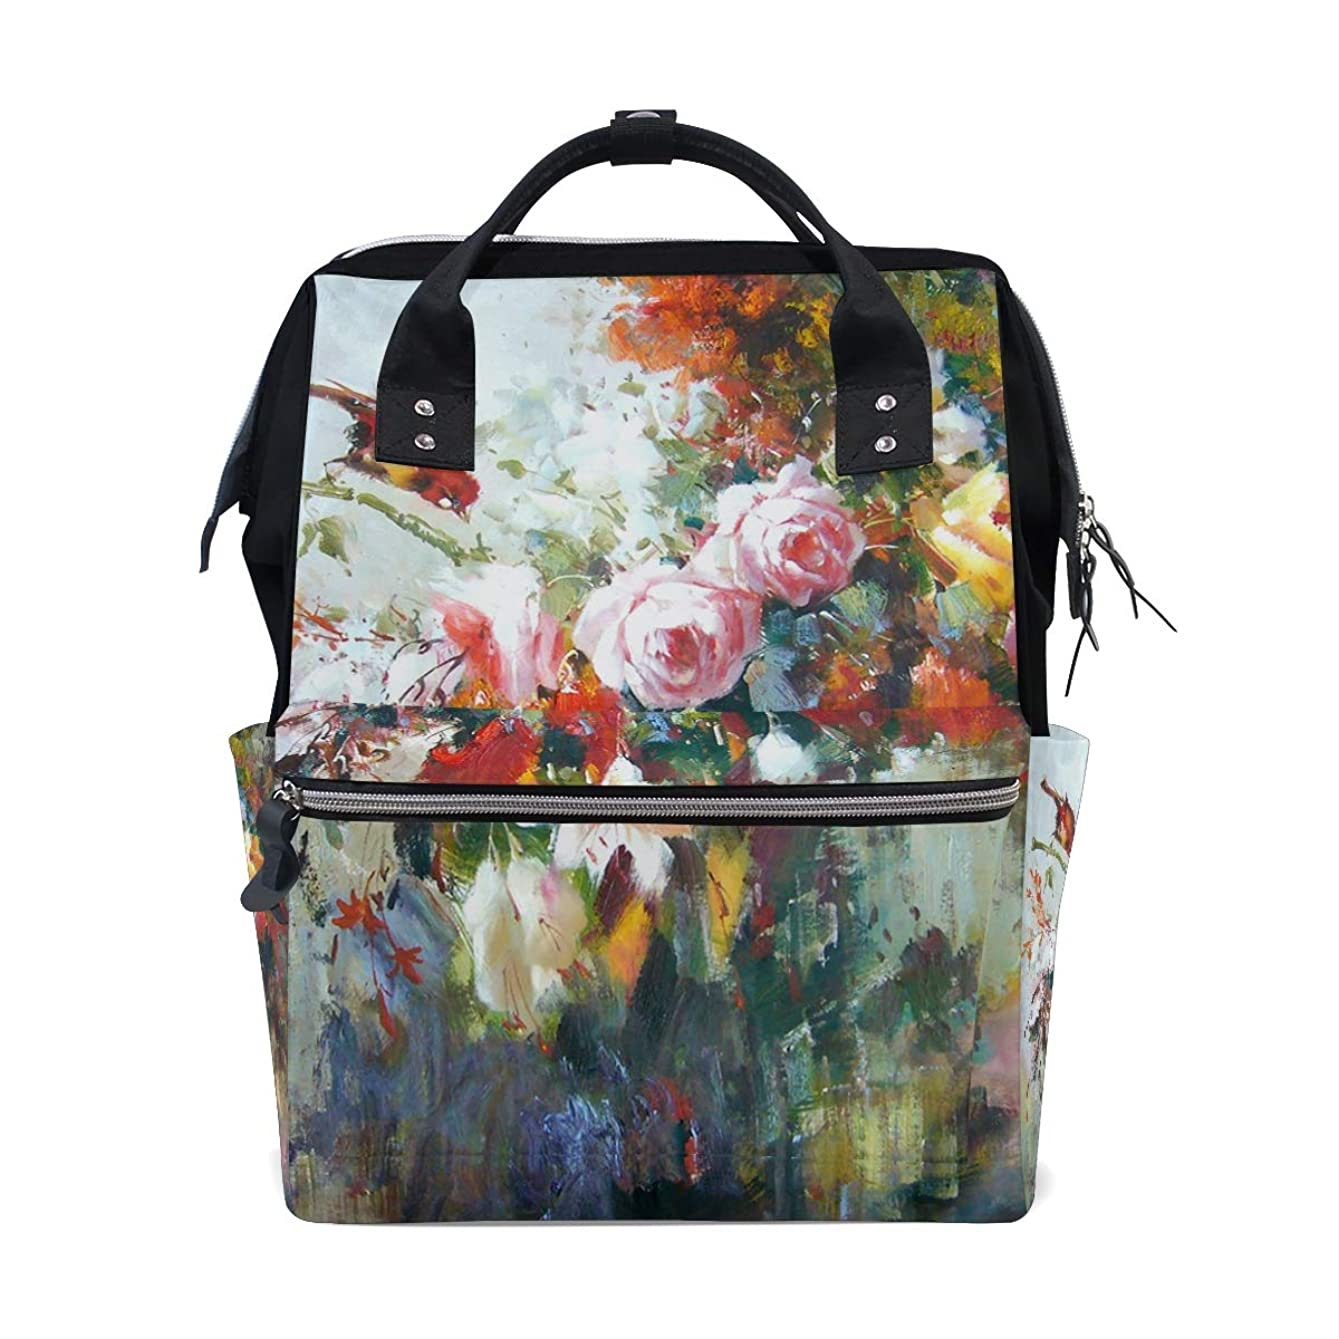 Oil Painting Art Flowers School Backpack Large Capacity Mummy Bags Laptop Handbag Casual Travel Rucksack Satchel For Women Men Adult Teen Children rwzvwn892054